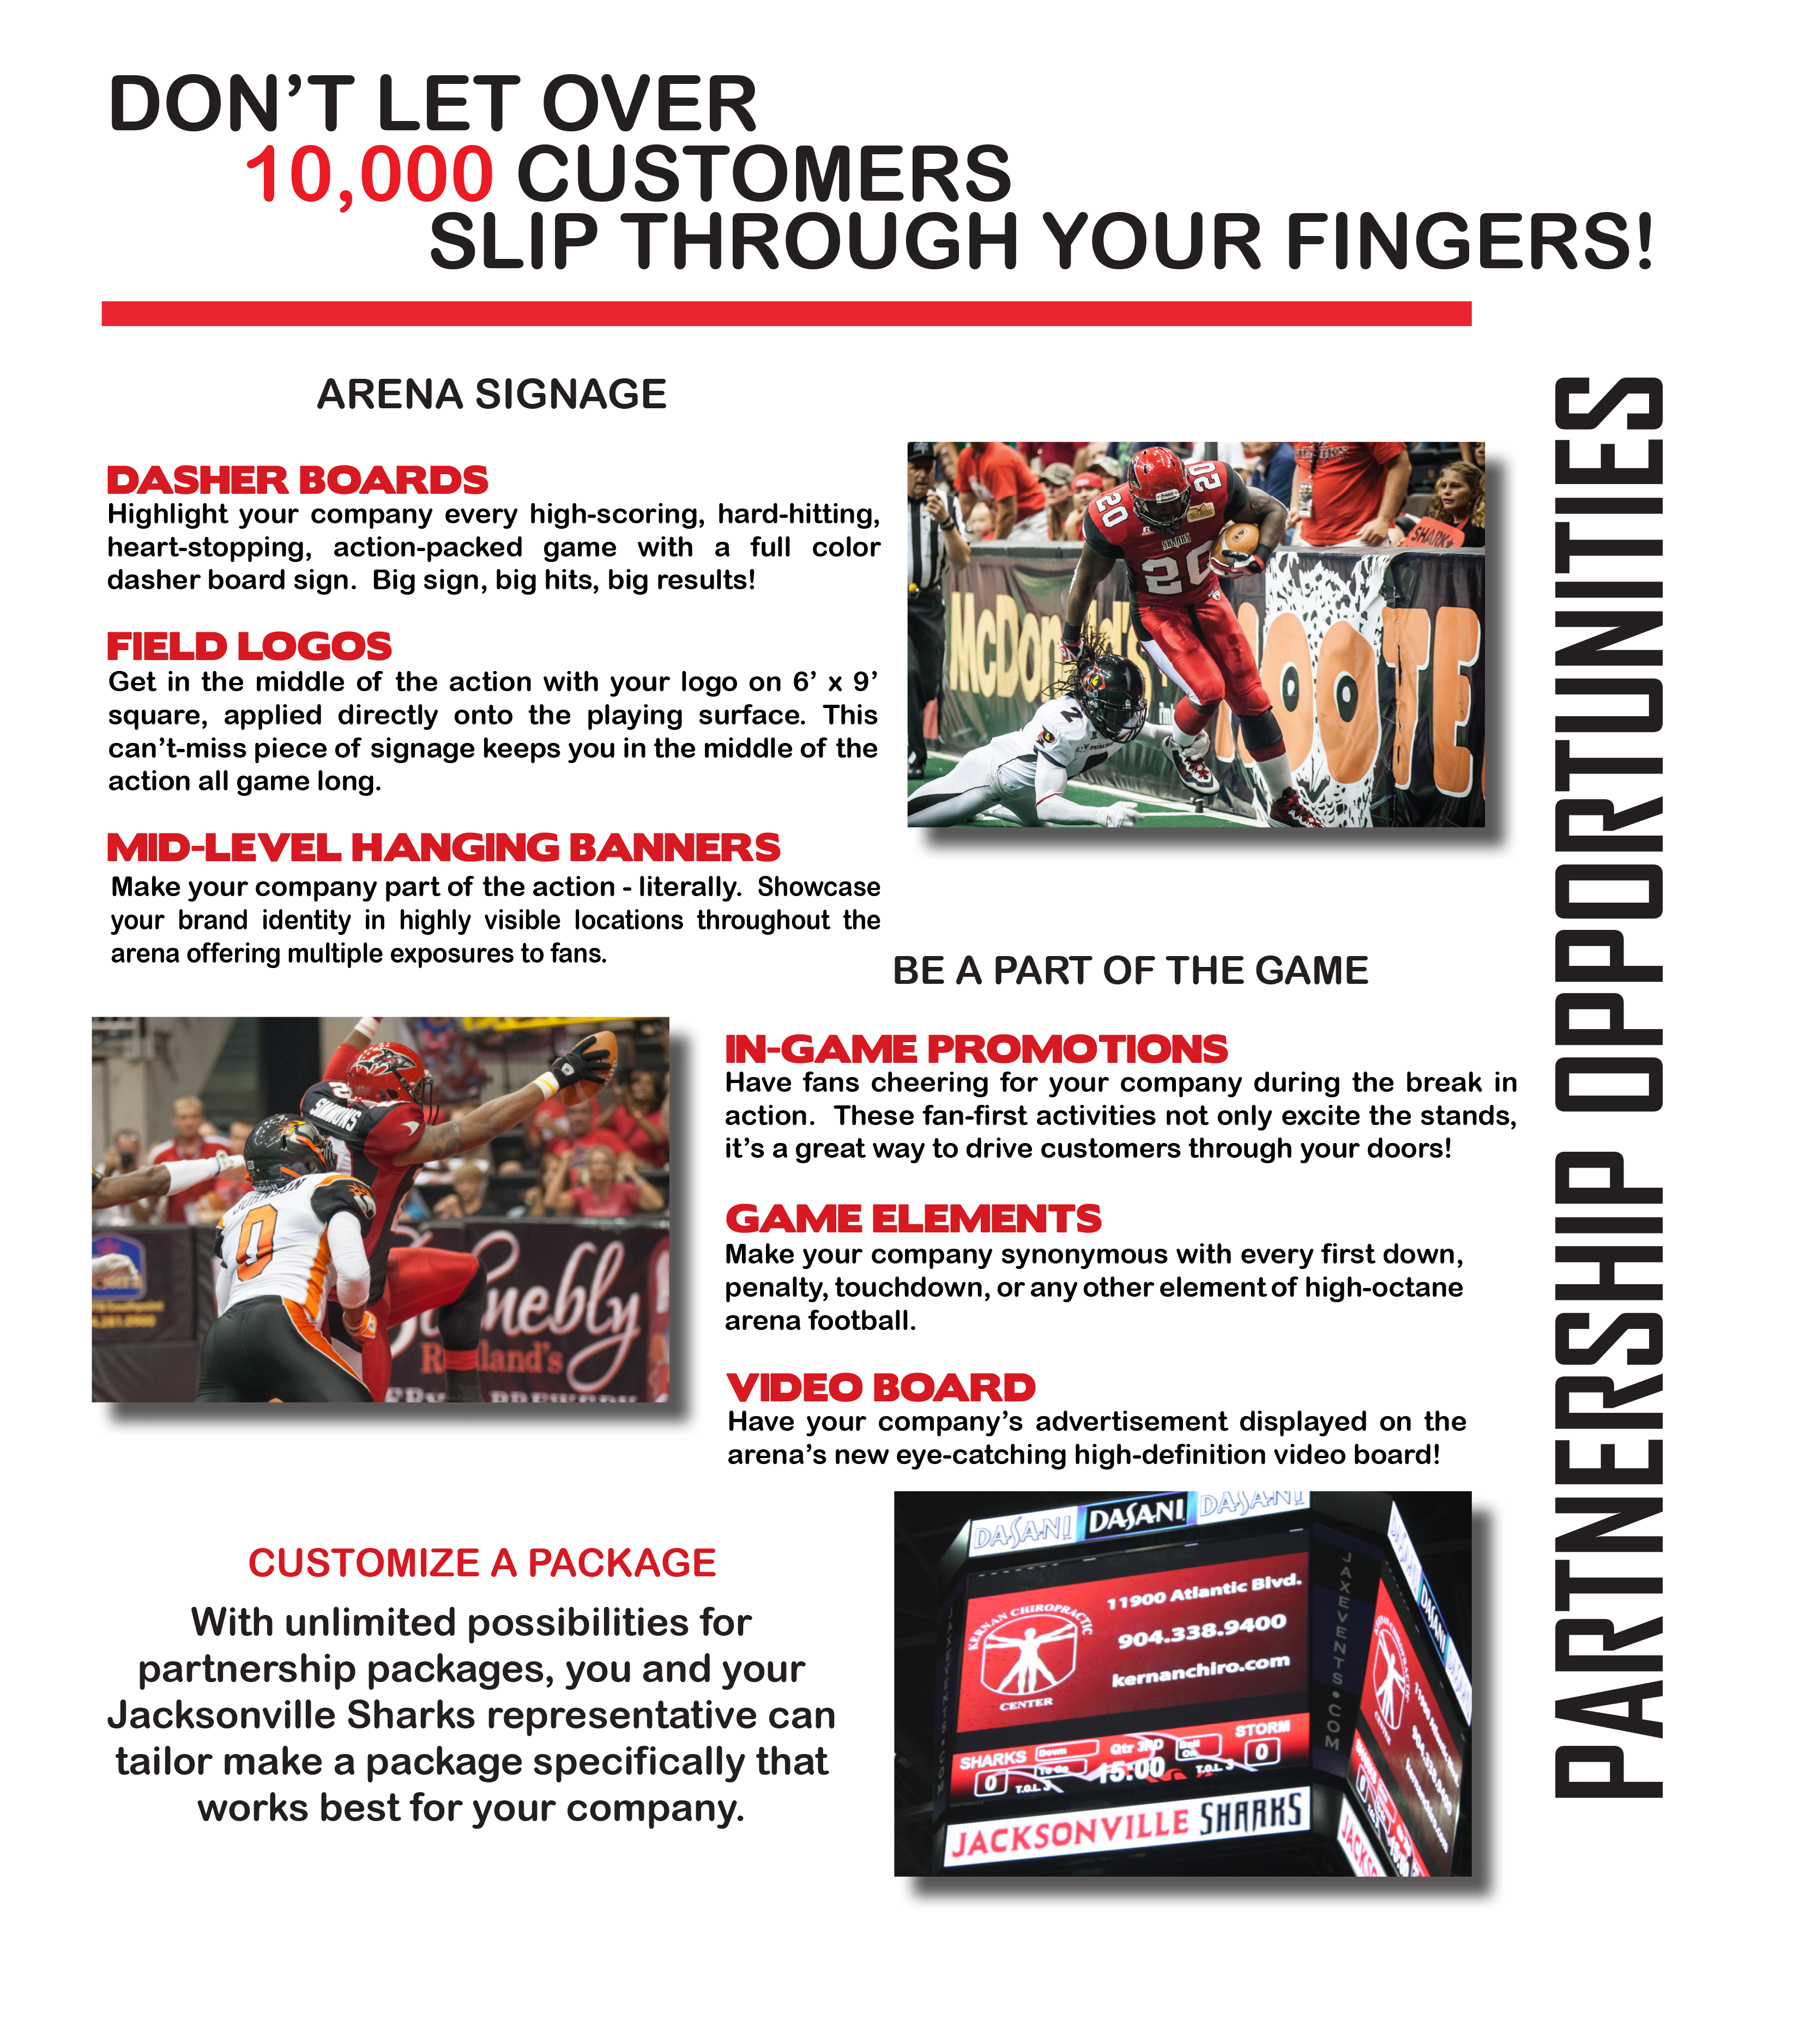 Jacksonville sharks become a partner to speak to a member of the sharks regarding your advertising plans contact kayla sharp kaylajaxsharks or call 904 900 2060 ext 703 altavistaventures Choice Image